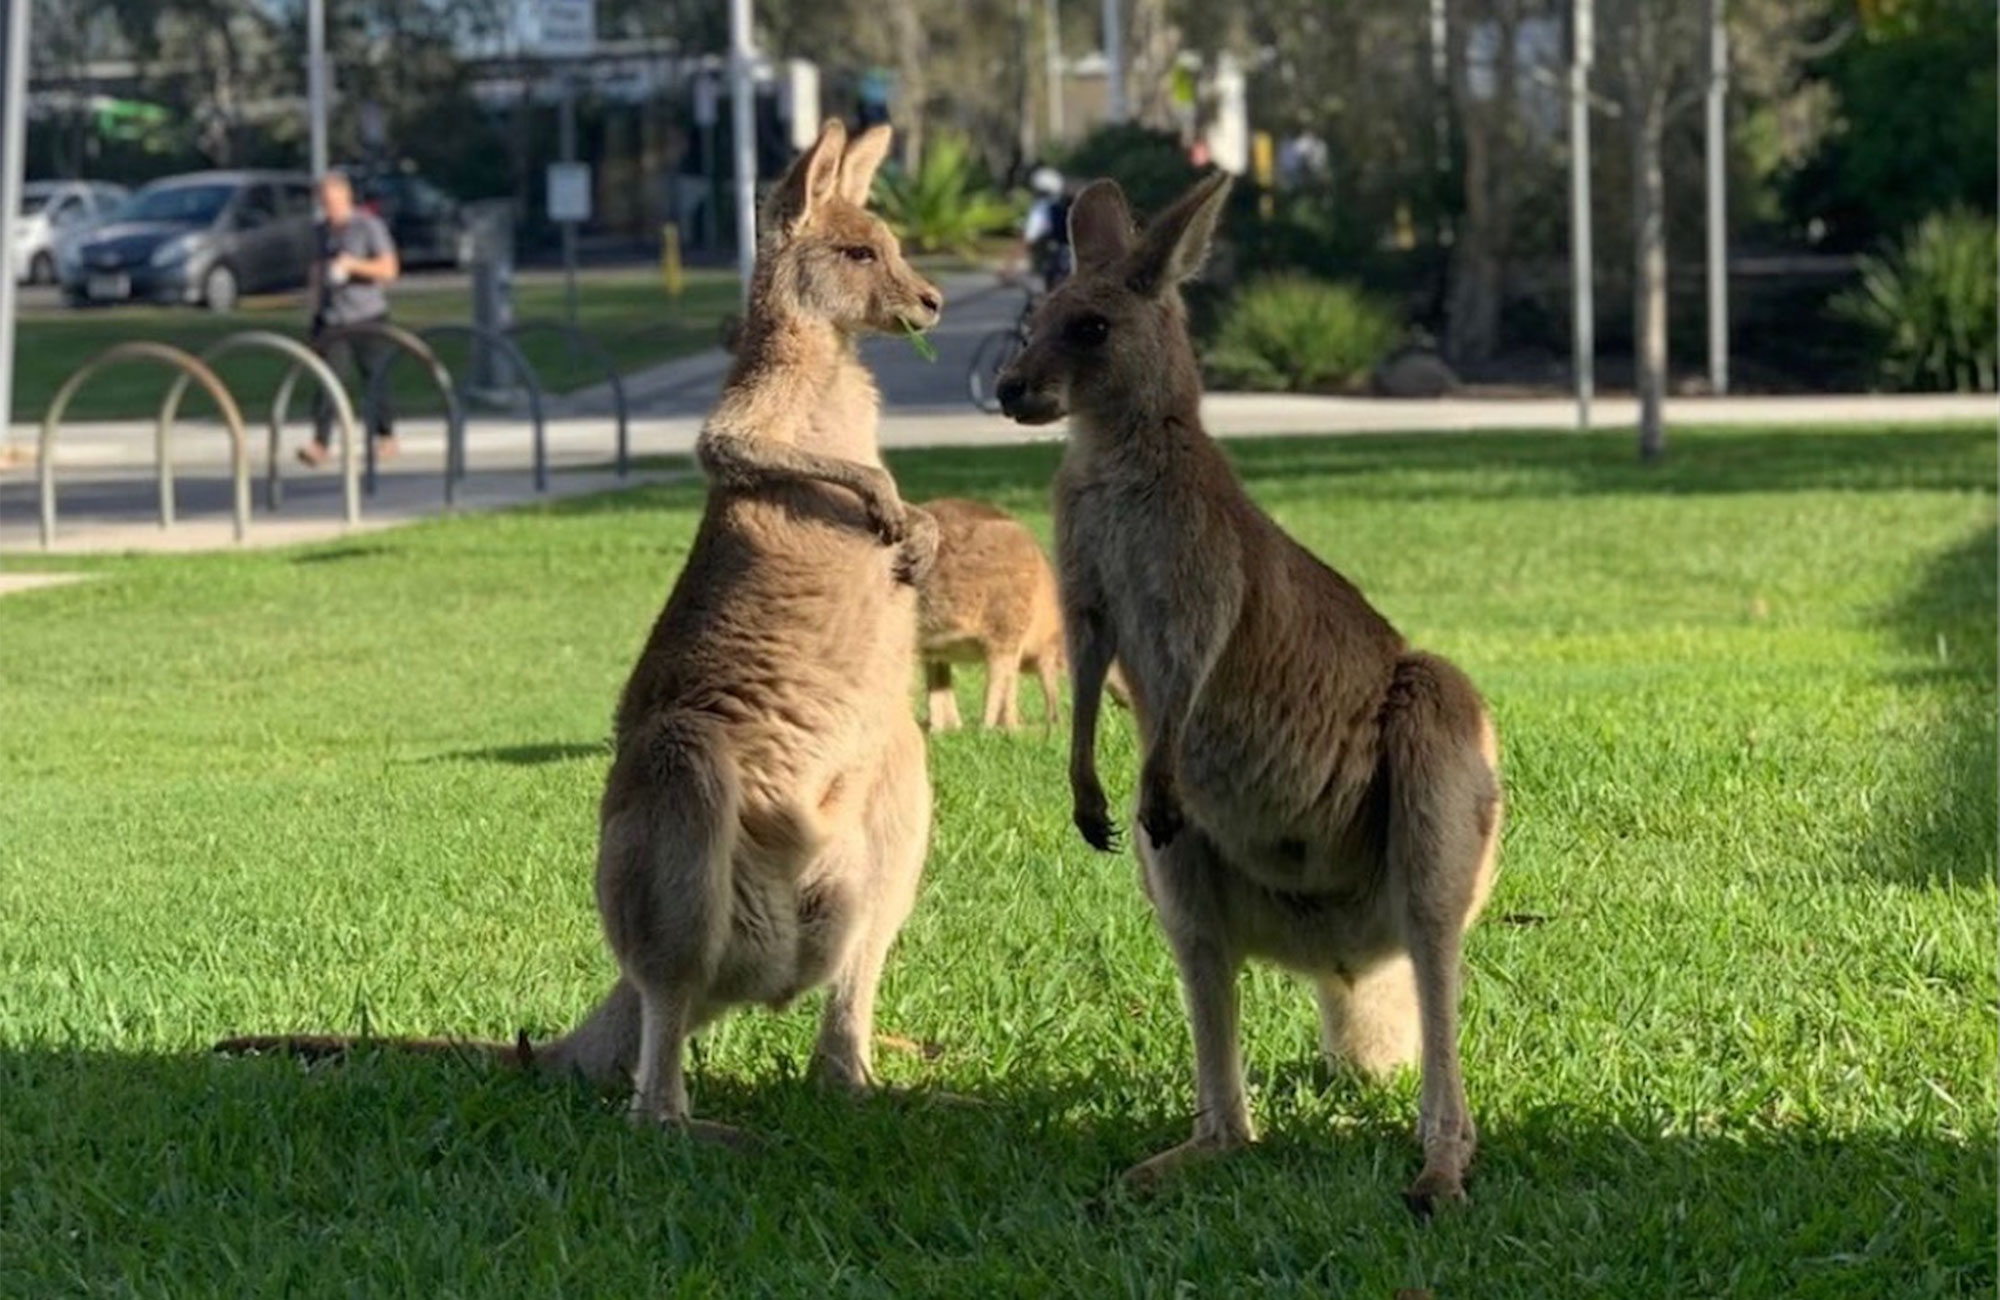 kangaroos on campus at USC in Australia